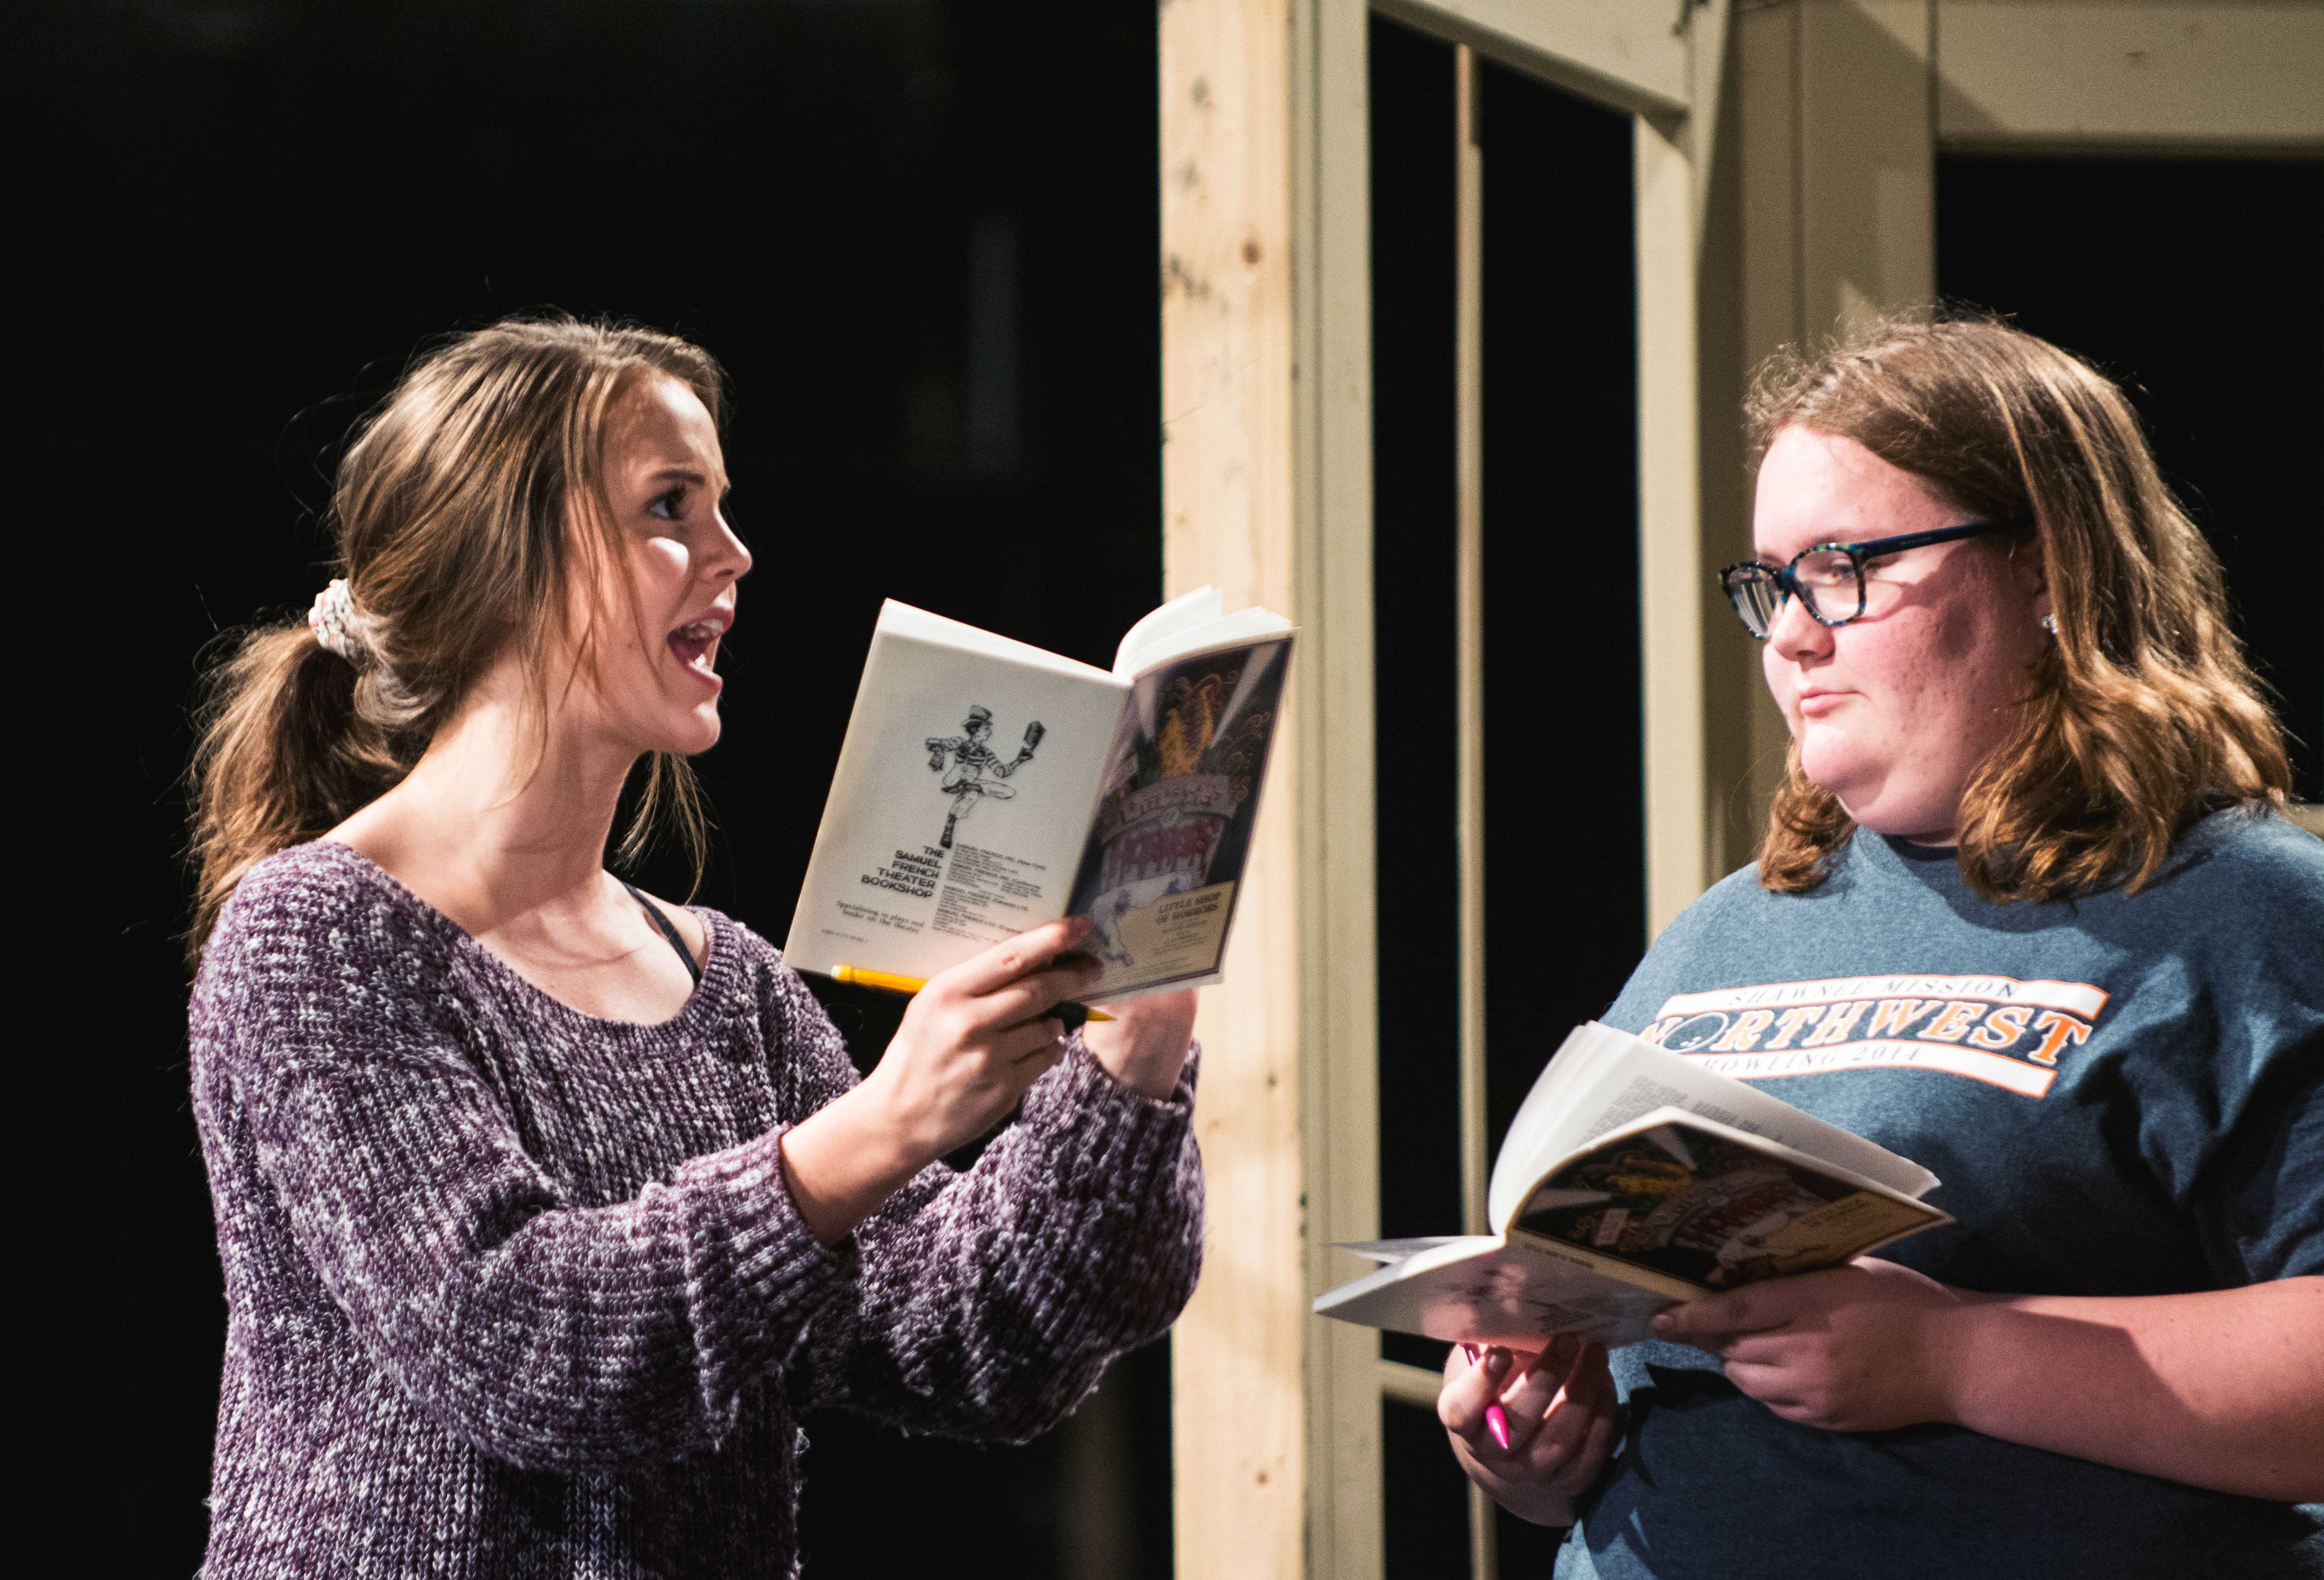 Reading from her script, senior Maggie Marx acts during the rehearsal of Little Shop of Horrors on Sept. 15. Marx portrayed the character of Audrey who has a crush on the lead male role of Seymour.